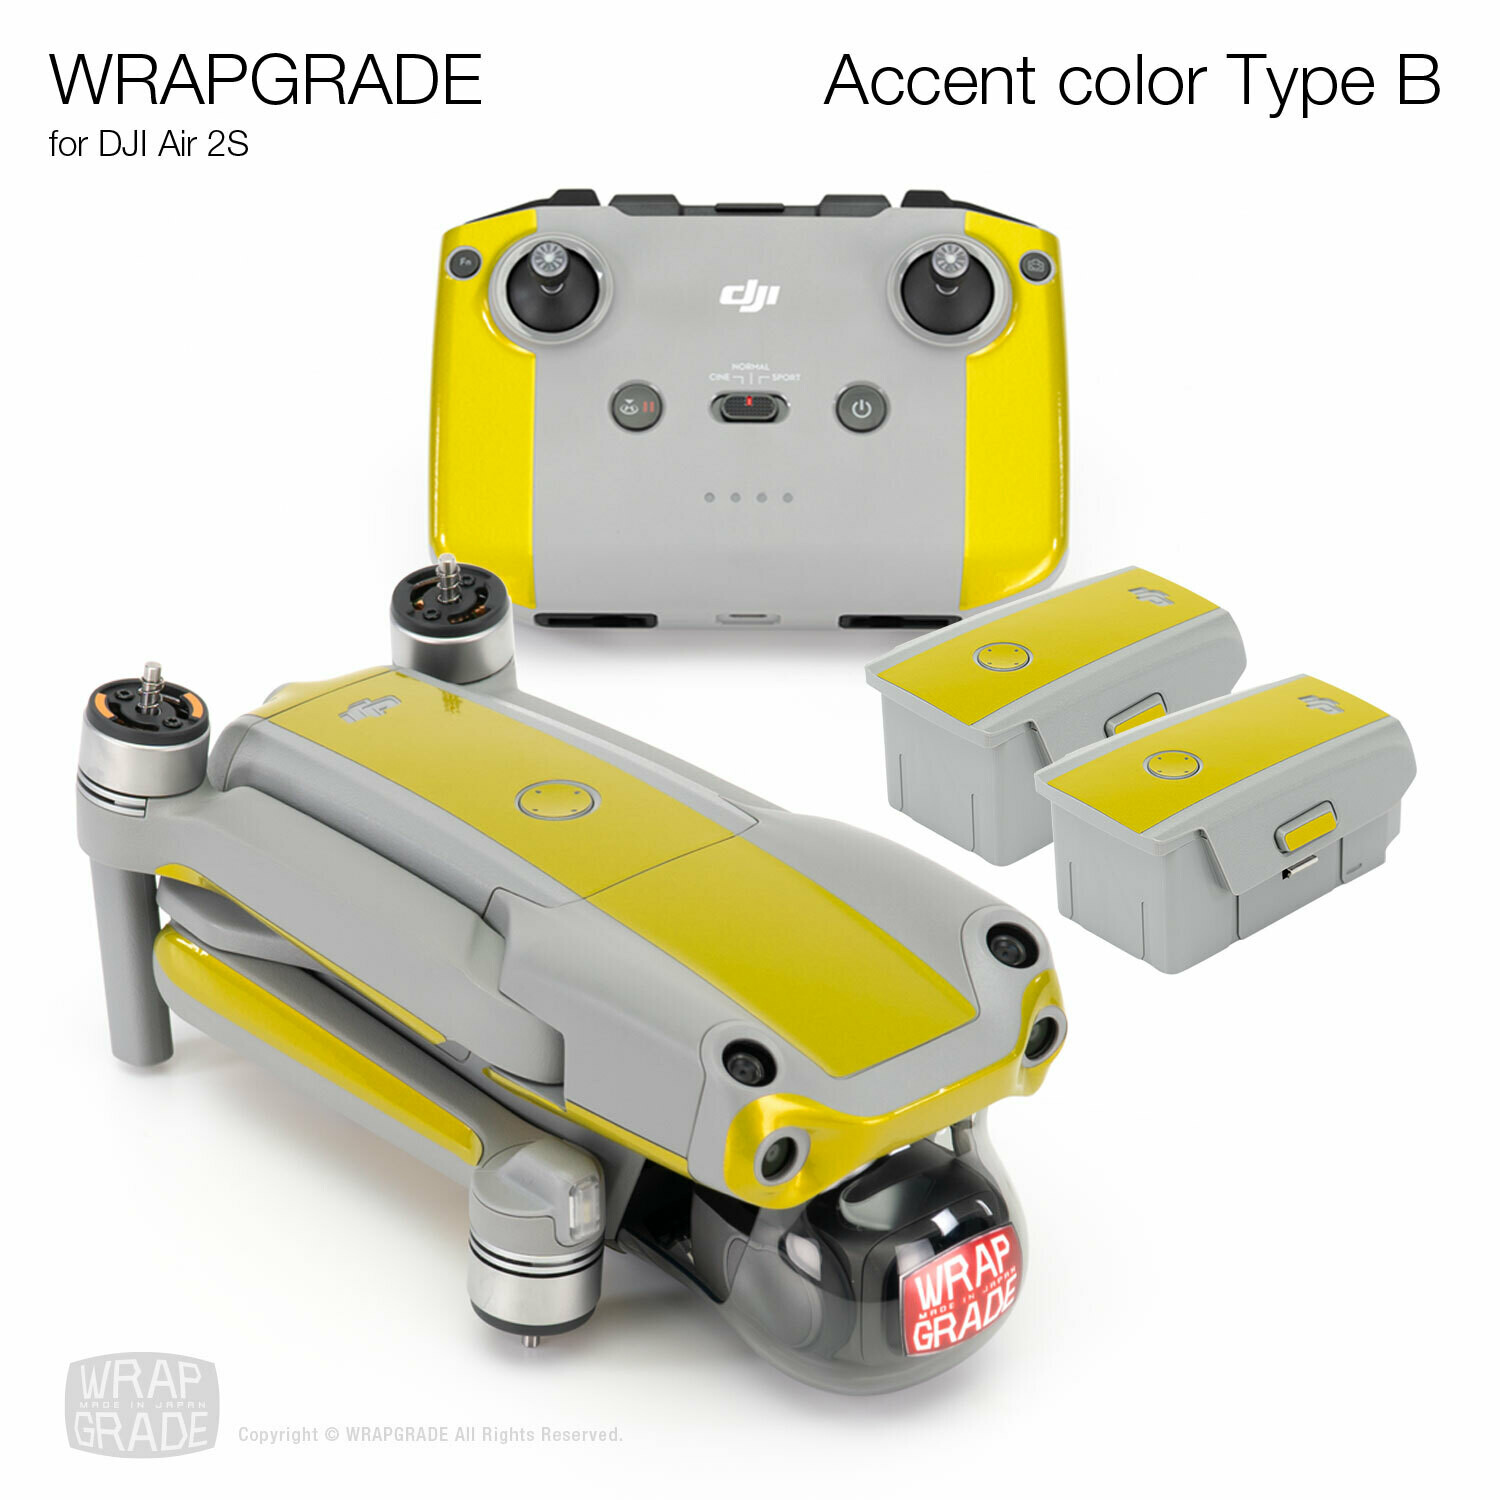 Wrapgrade Skin for DJI Air 2S | Accent Color B [20 colors]